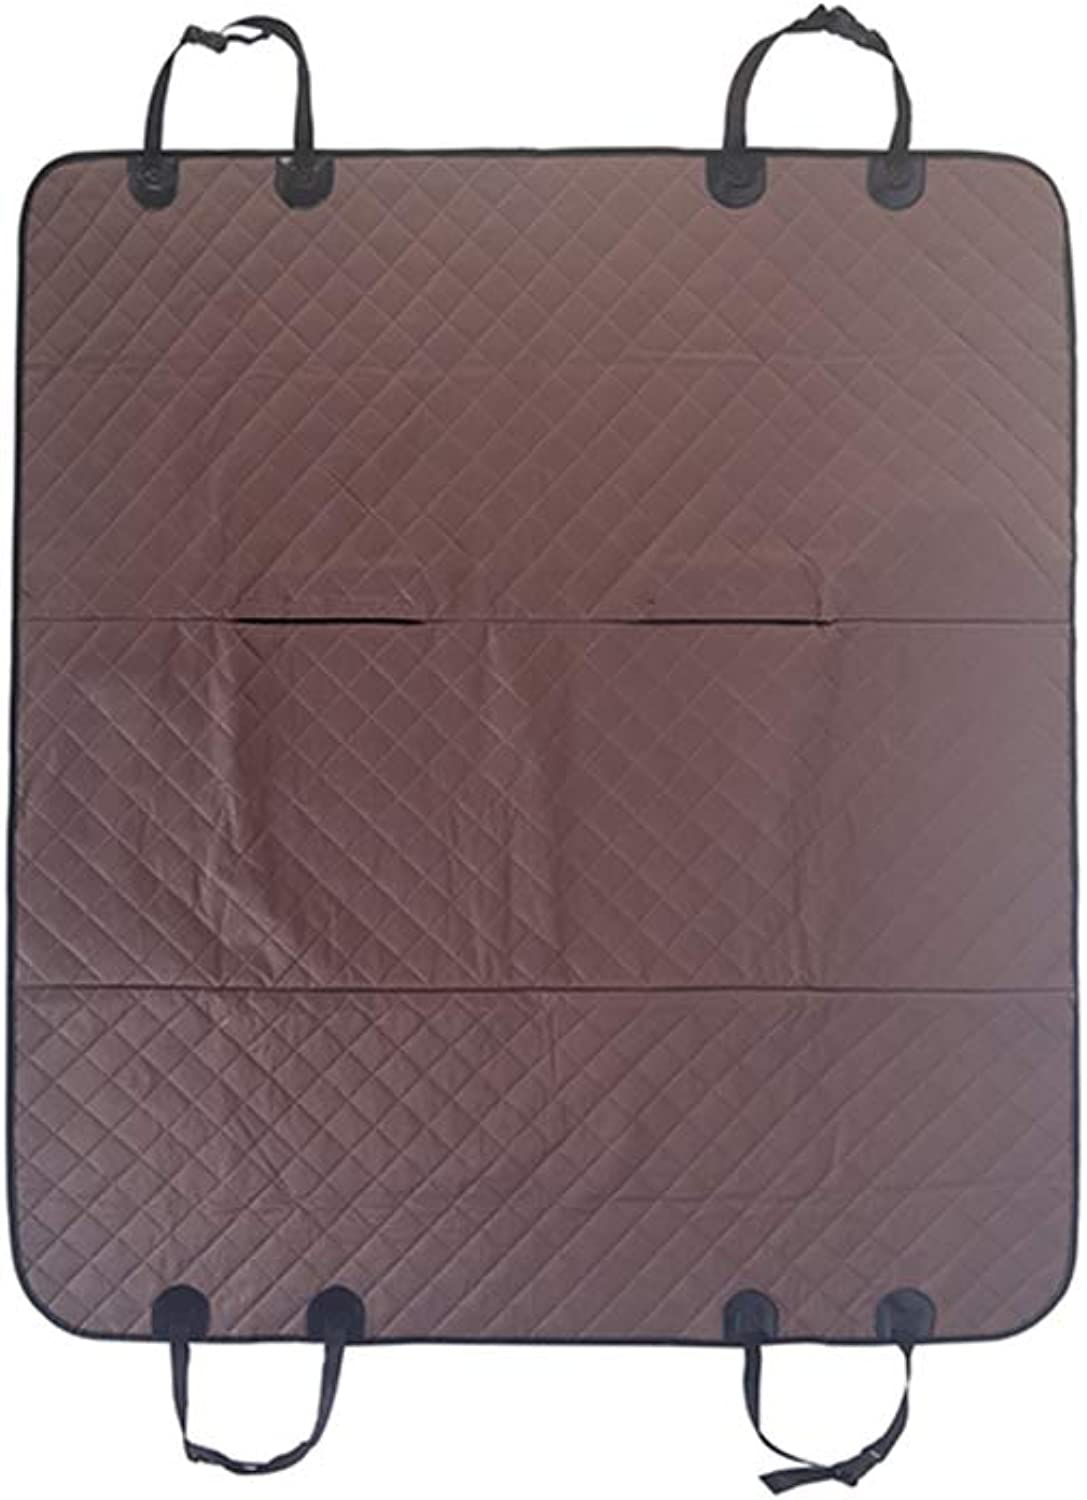 ALXDR Pet Dog Car Seat Covers for Back Seat, Nonslip Waterproof Dog Car Predector Mat Cover Oxford Cloth Antidirty Antiscratch Dog Mat Universal for Car and SUV Trucks,Brown